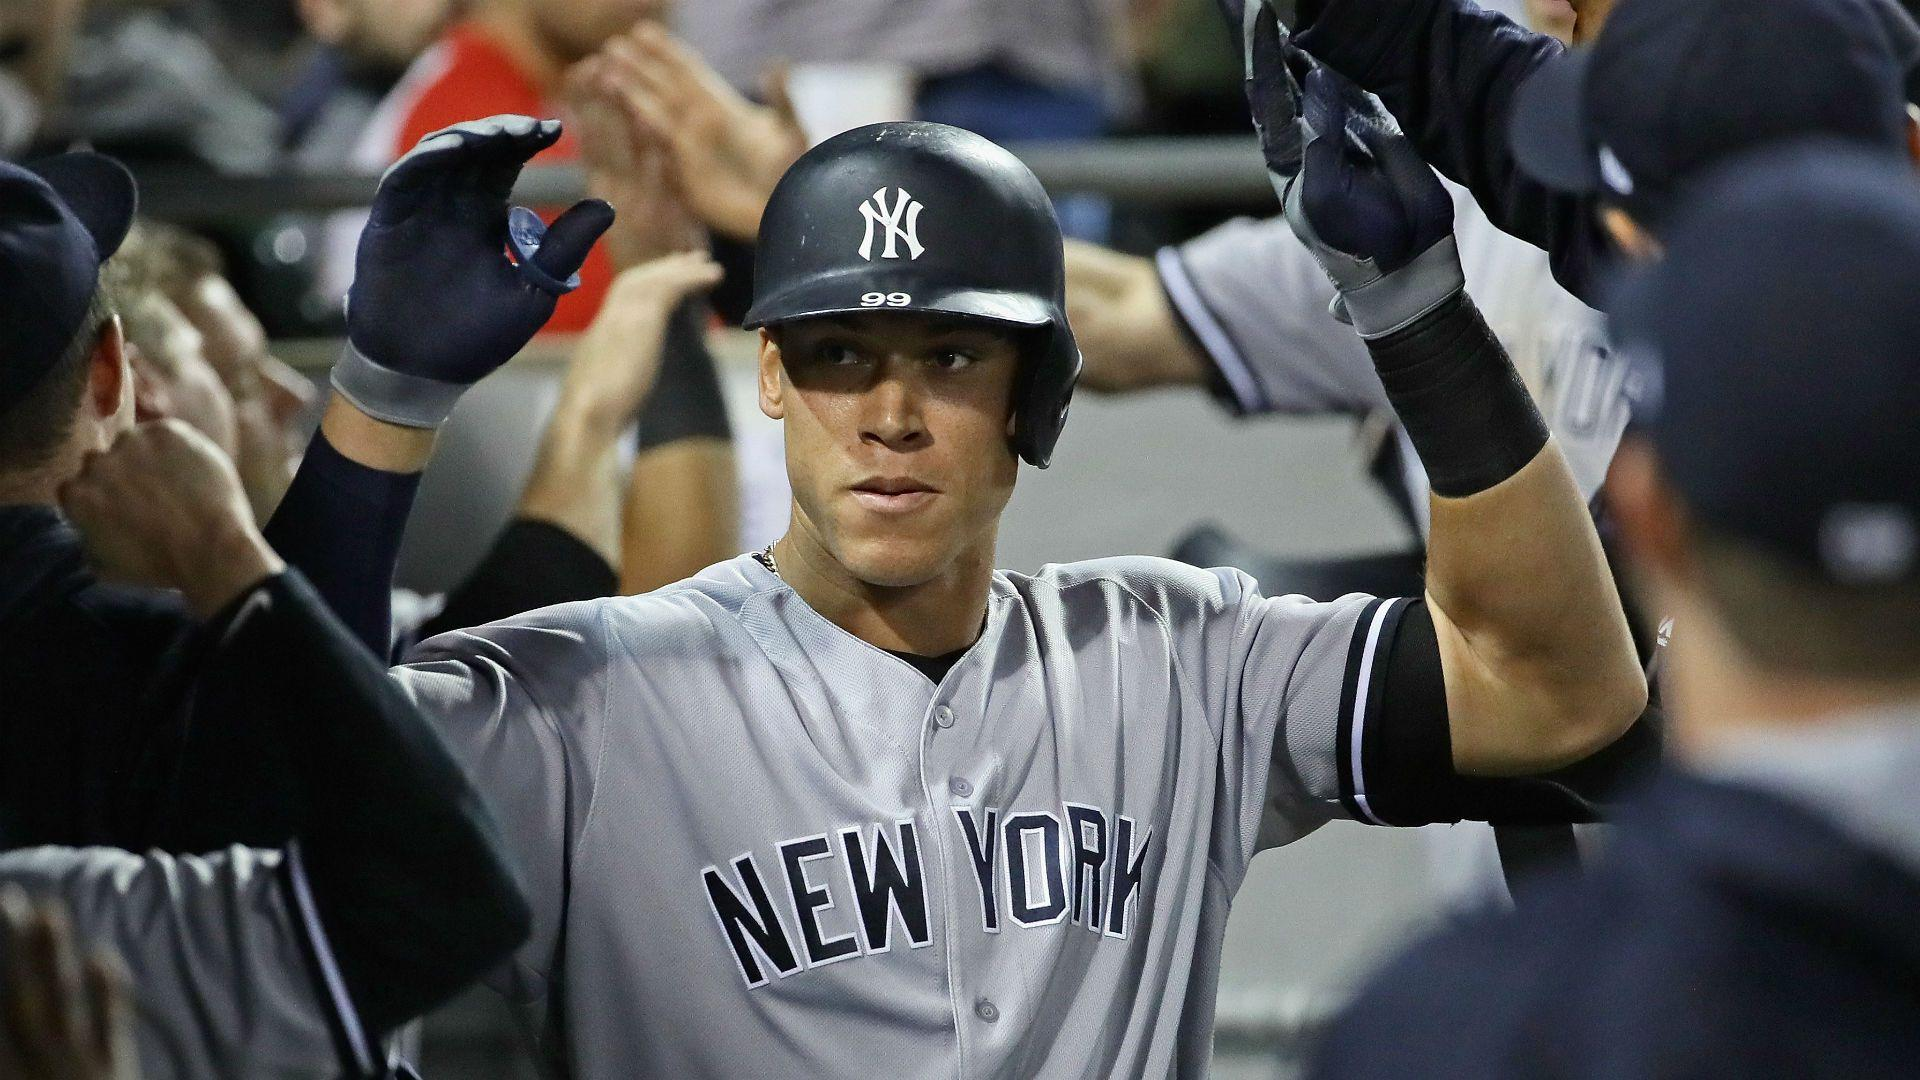 Aaron Judge continues to be as good as advertised in win vs. White